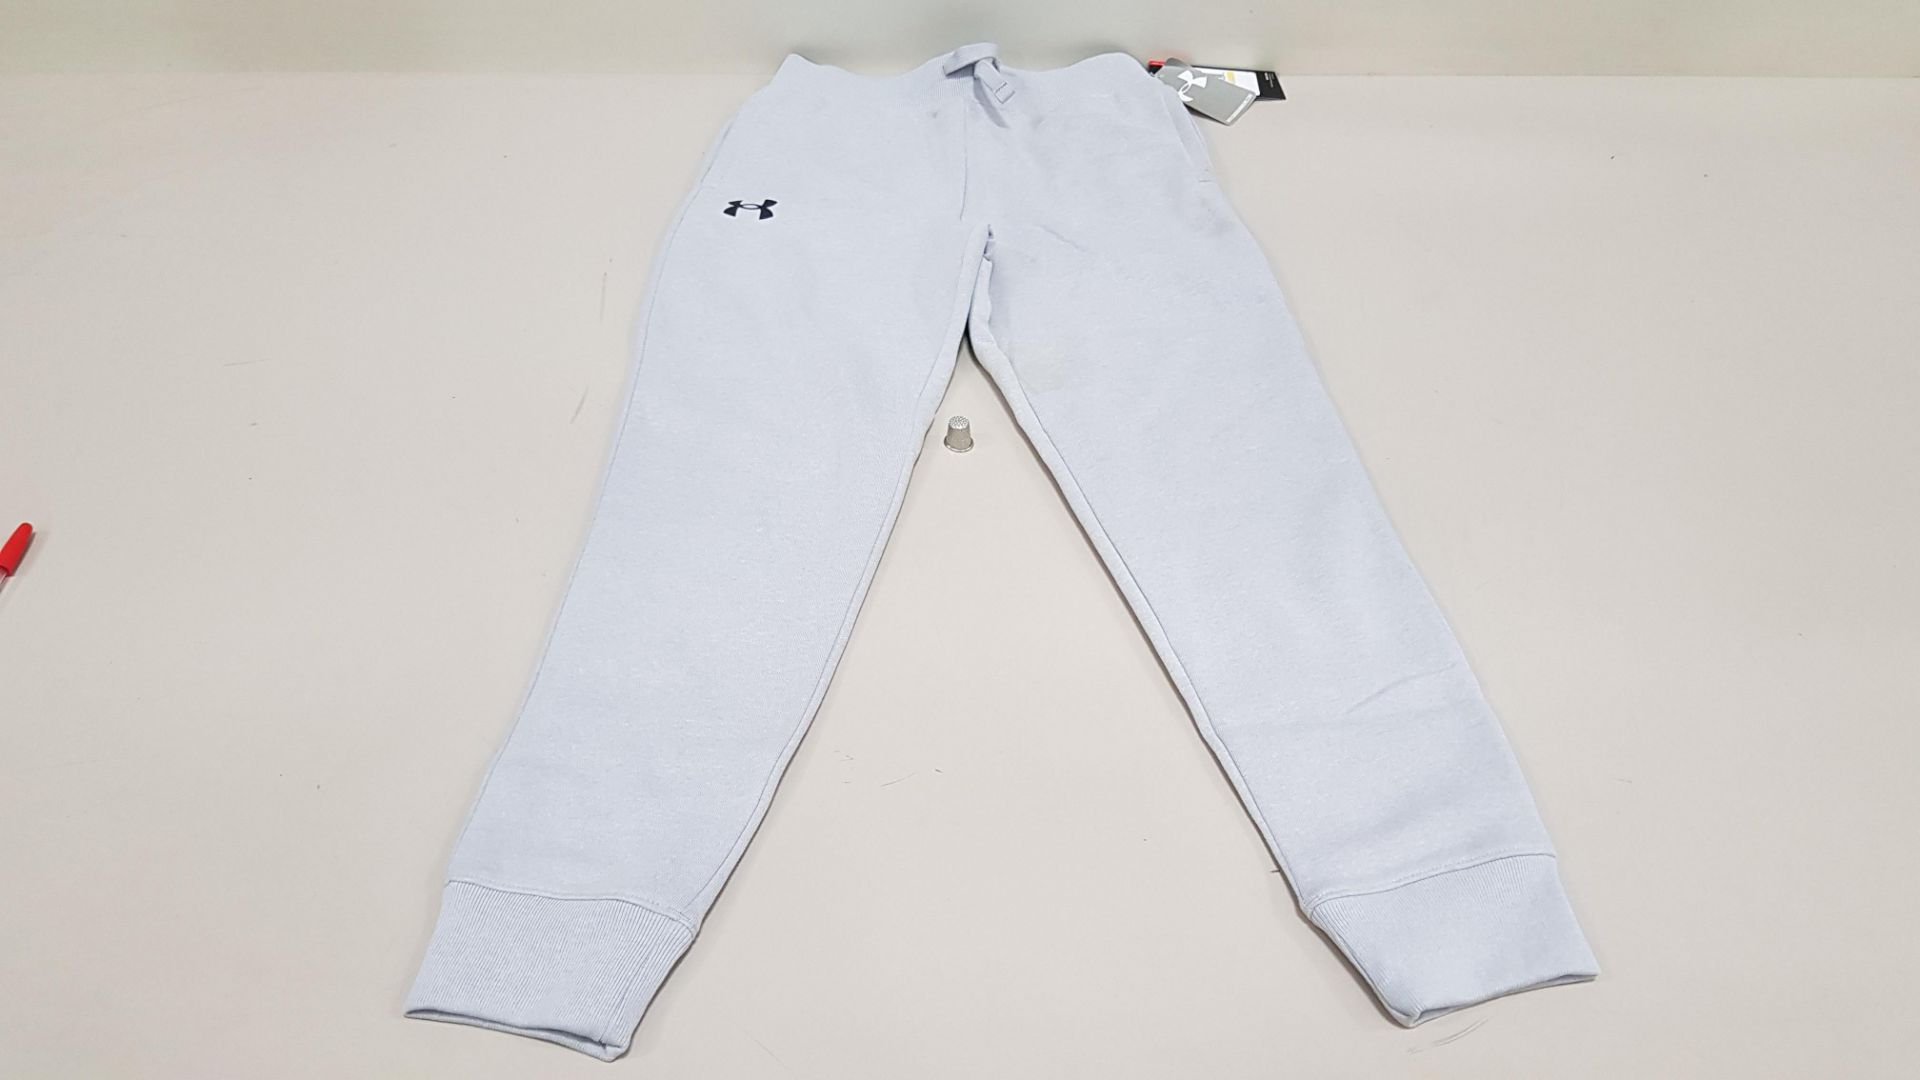 10 X BRAND NEW UNDER ARMOUR BOYS UNDER ARMOUR PANTS SIZE YLG/G